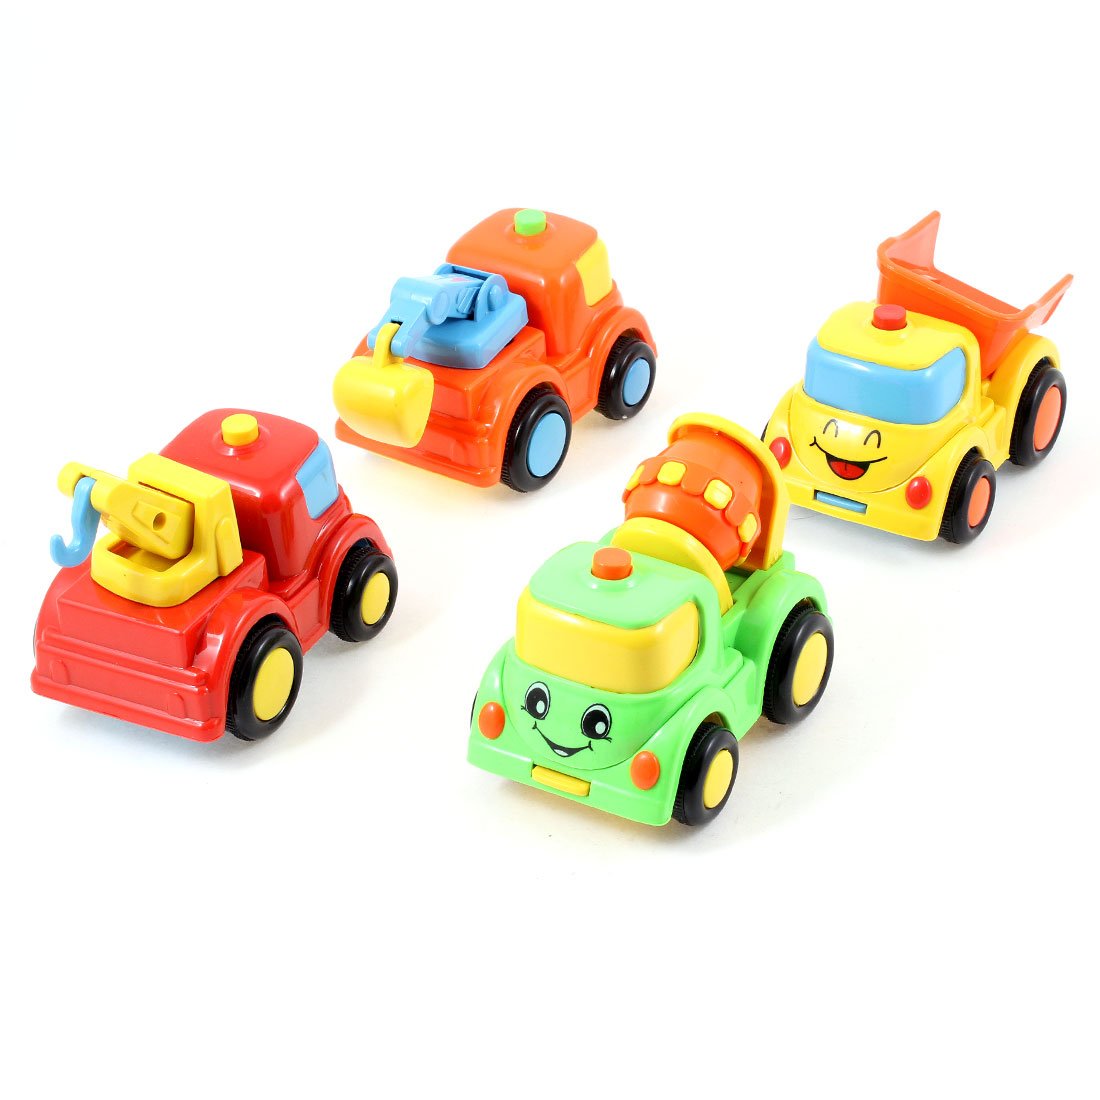 Children Multicolored Plastic Inertia Dump Truck Engineering Car Toys 4 in 1